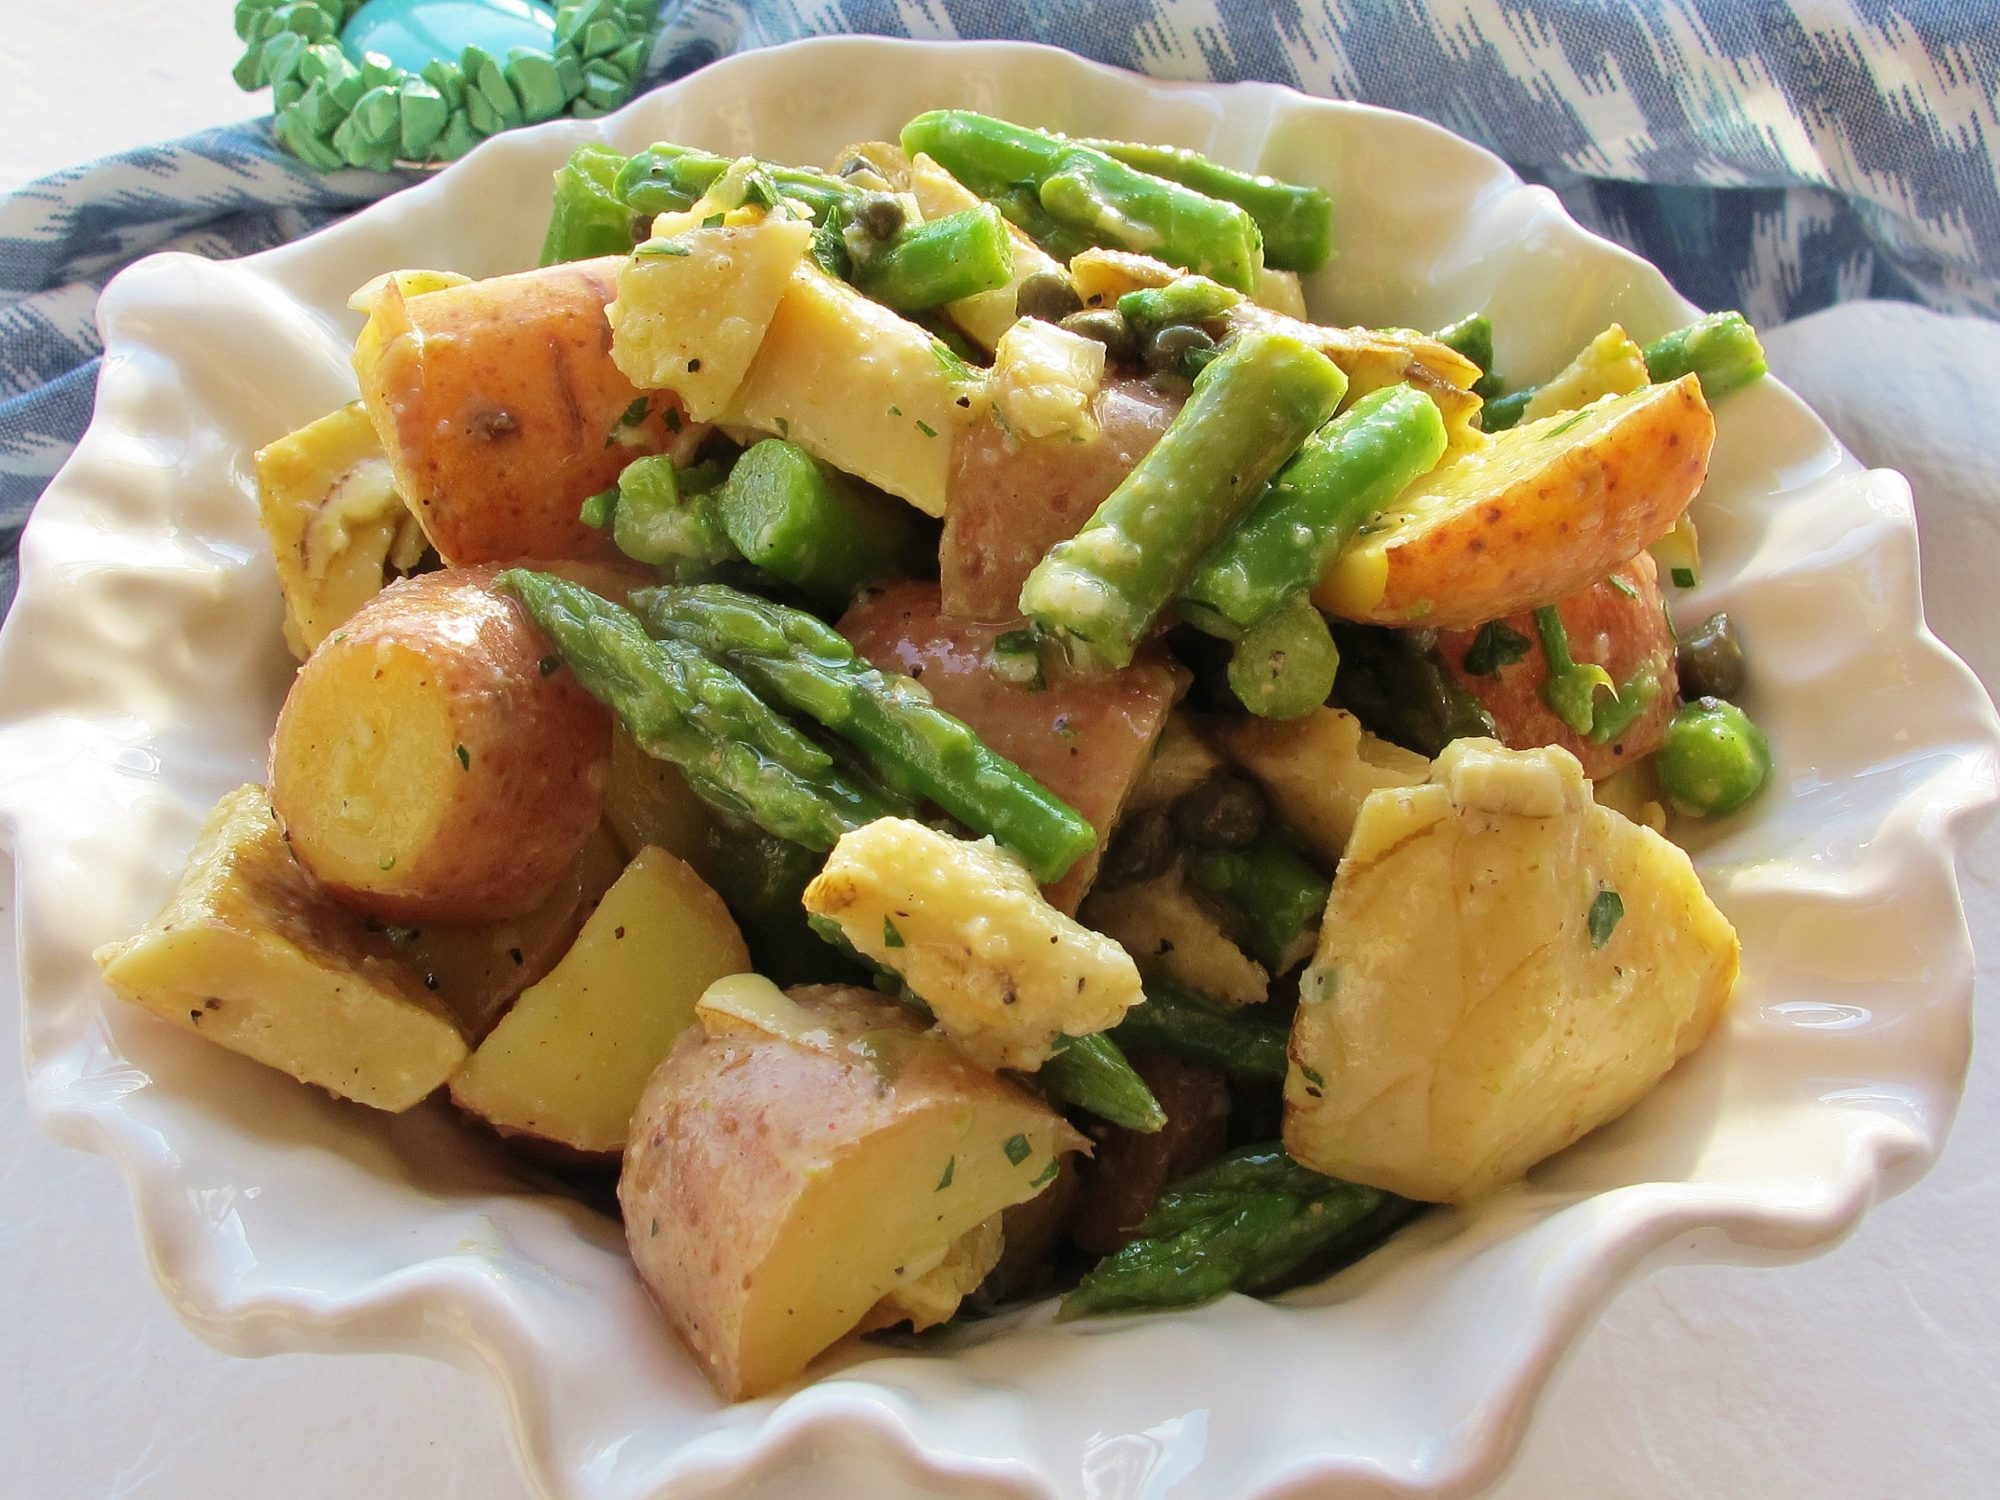 Red Potato, Asparagus, and Artichoke Salad